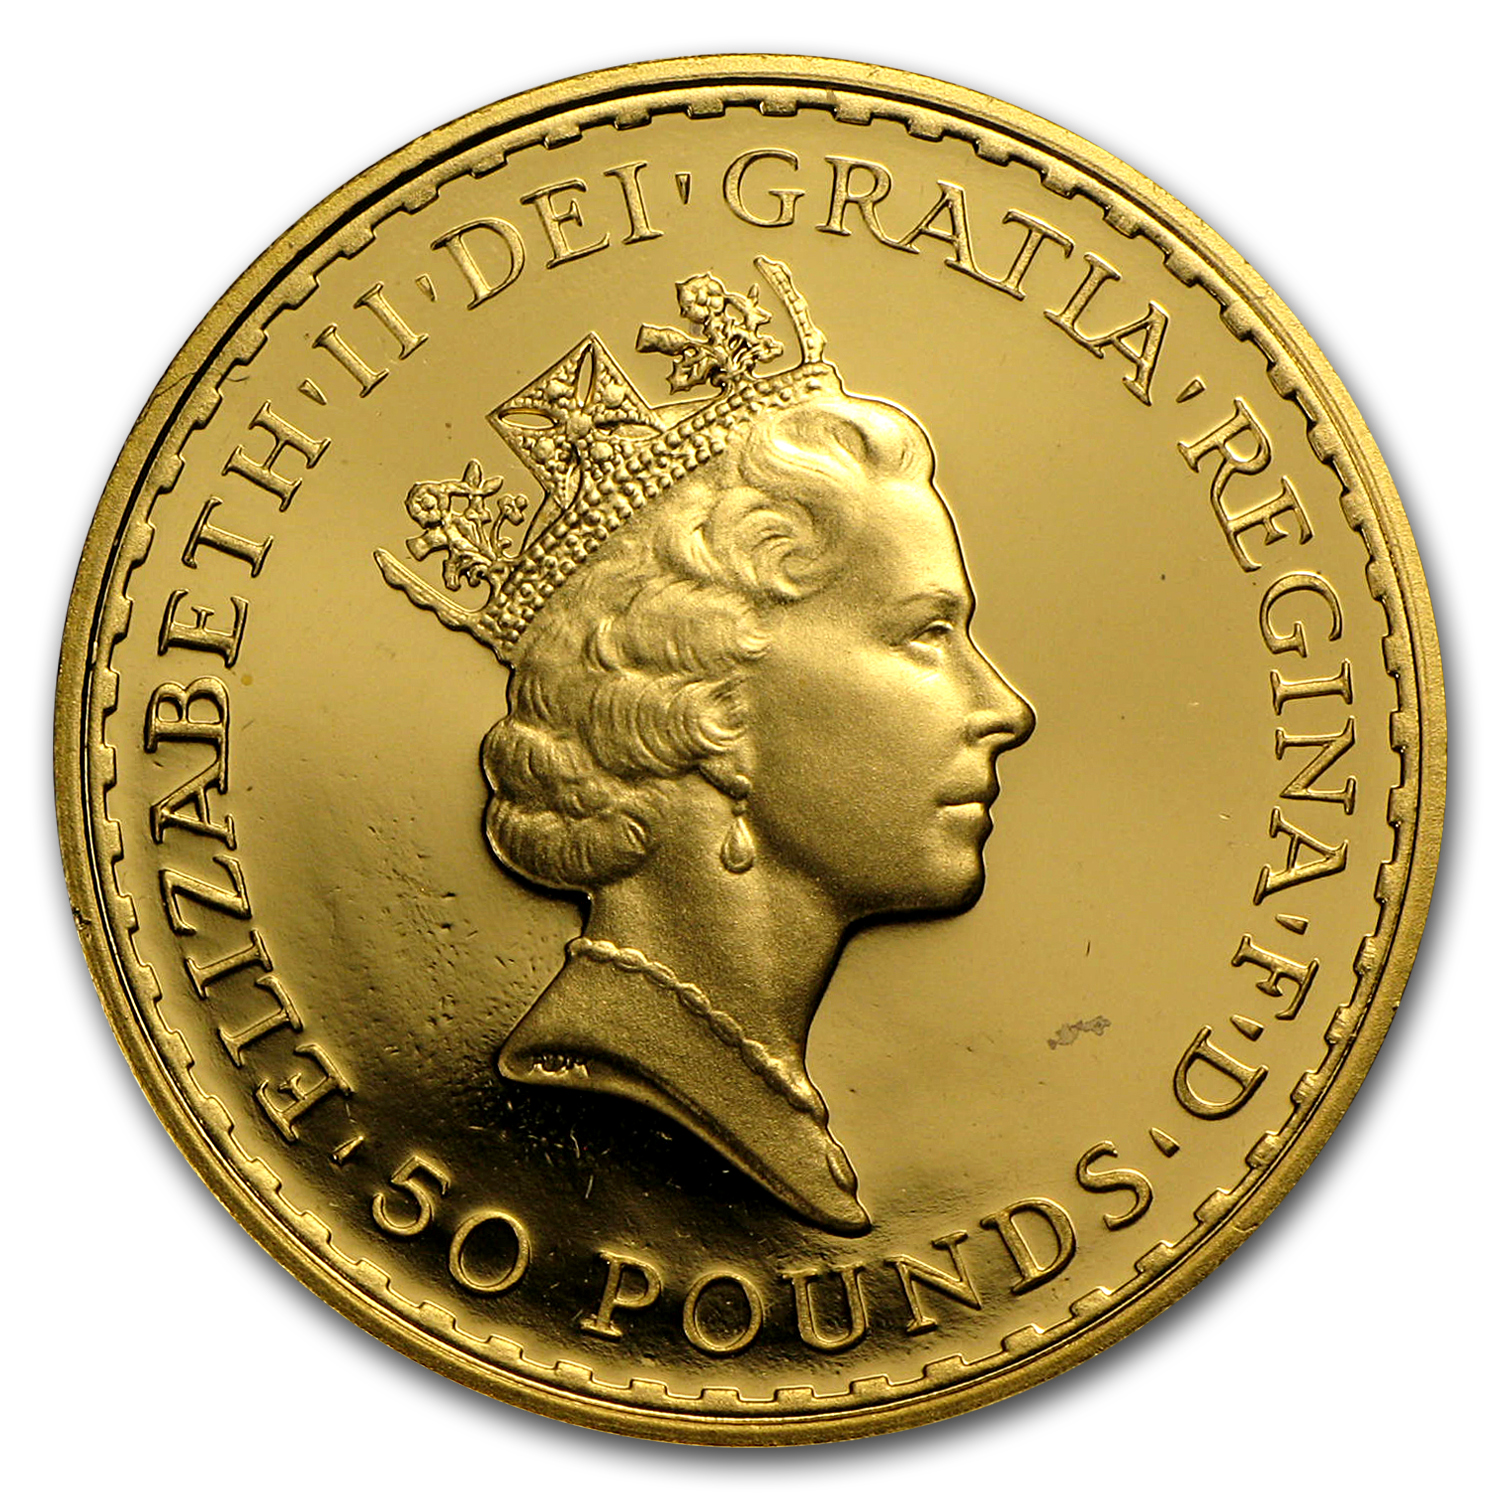 1996 Great Britain 1/2 oz Proof Gold Britannia